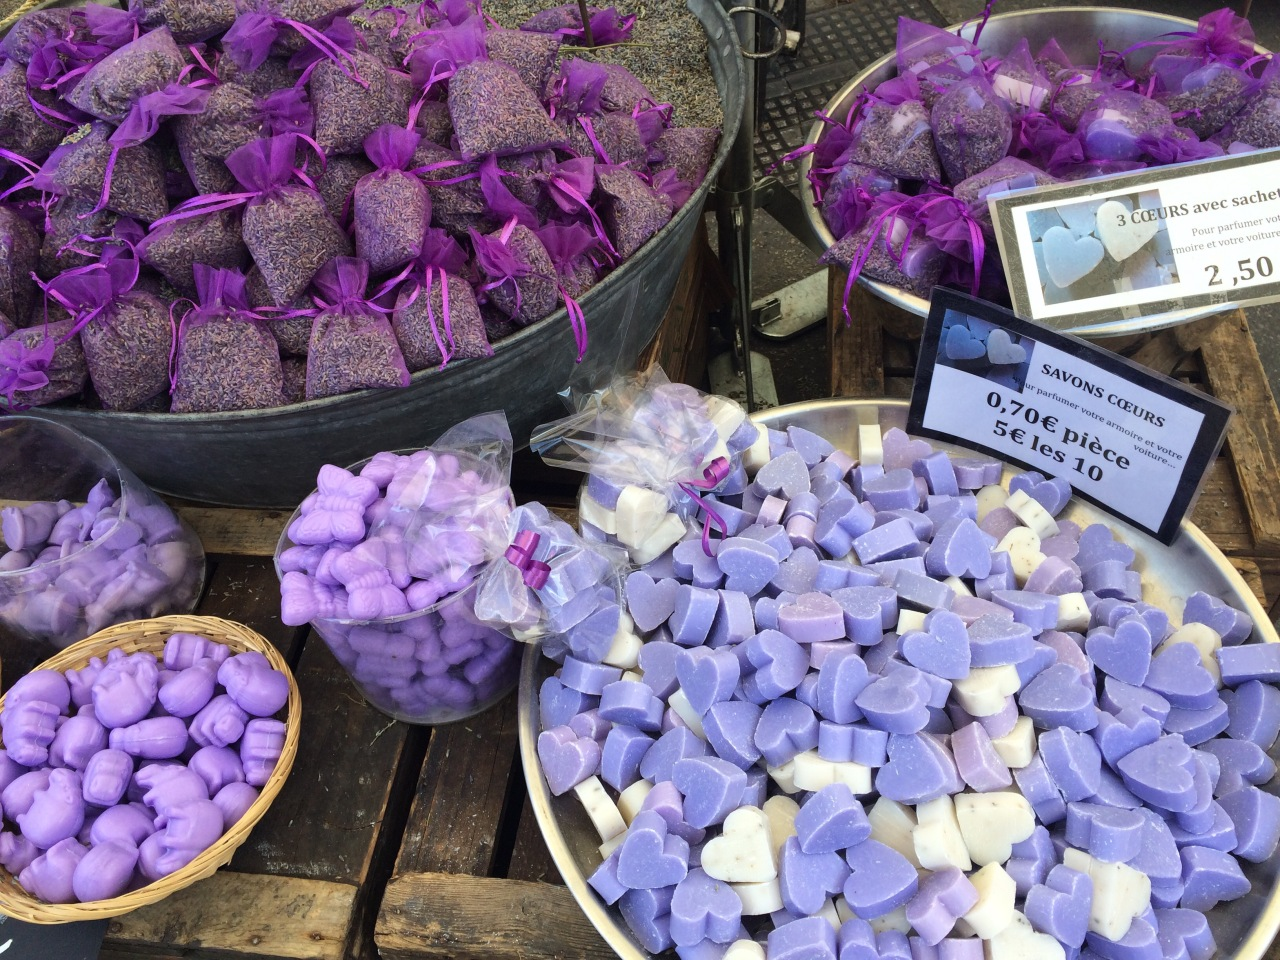 Lavender, Lavender everywhere….. The Apt Lavender Festival